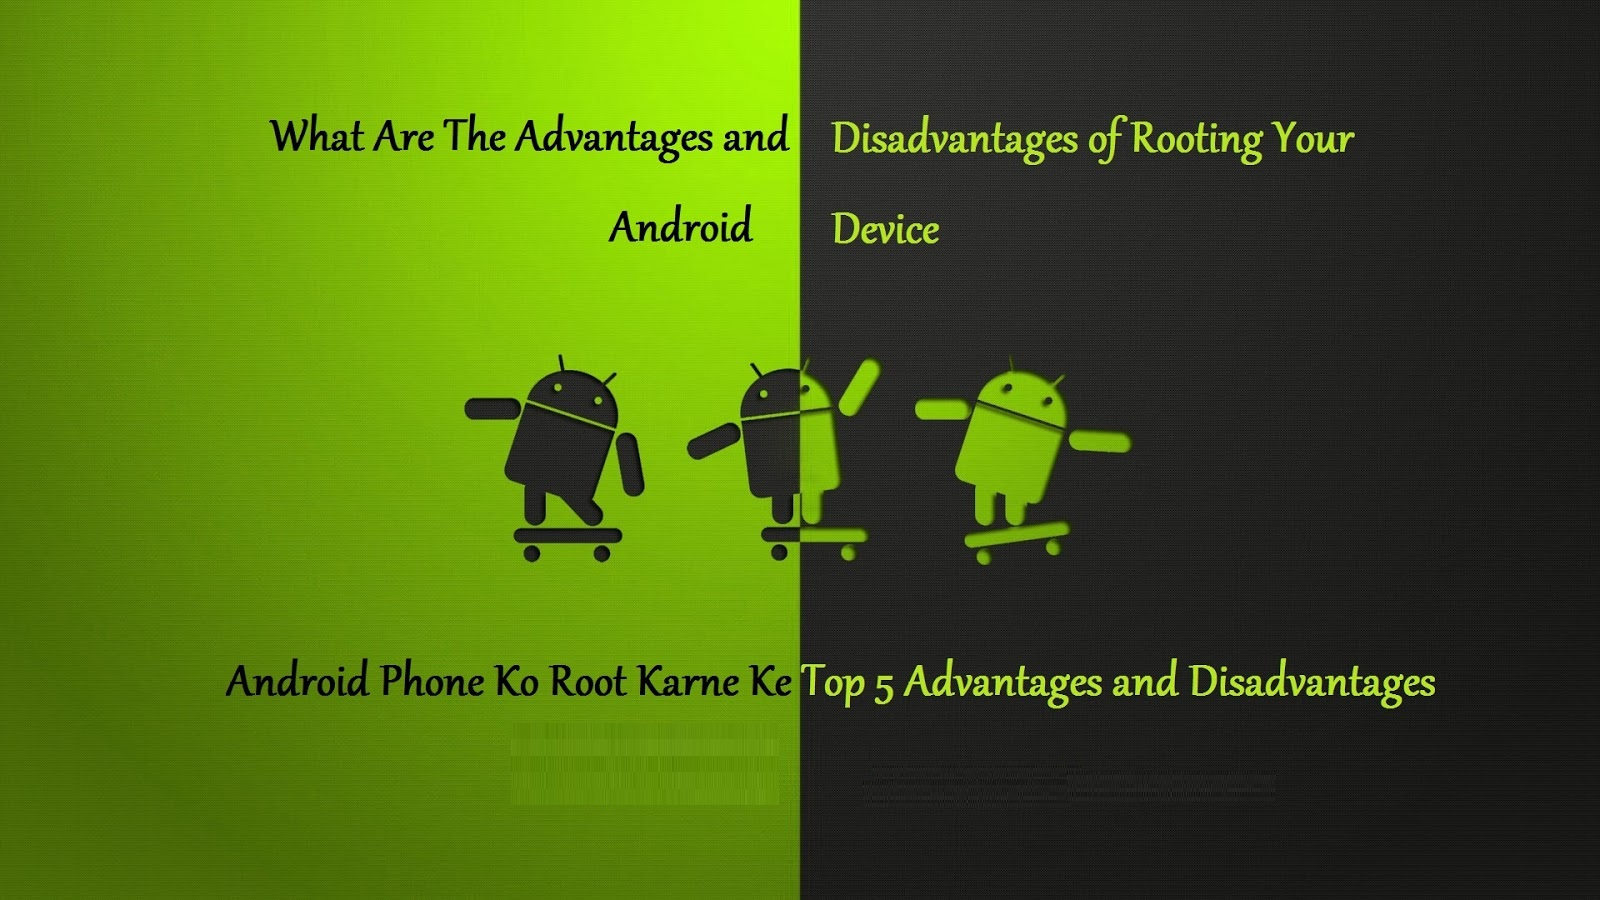 Android Phone Ko Root Karne Ke Advantages or Disadvantages